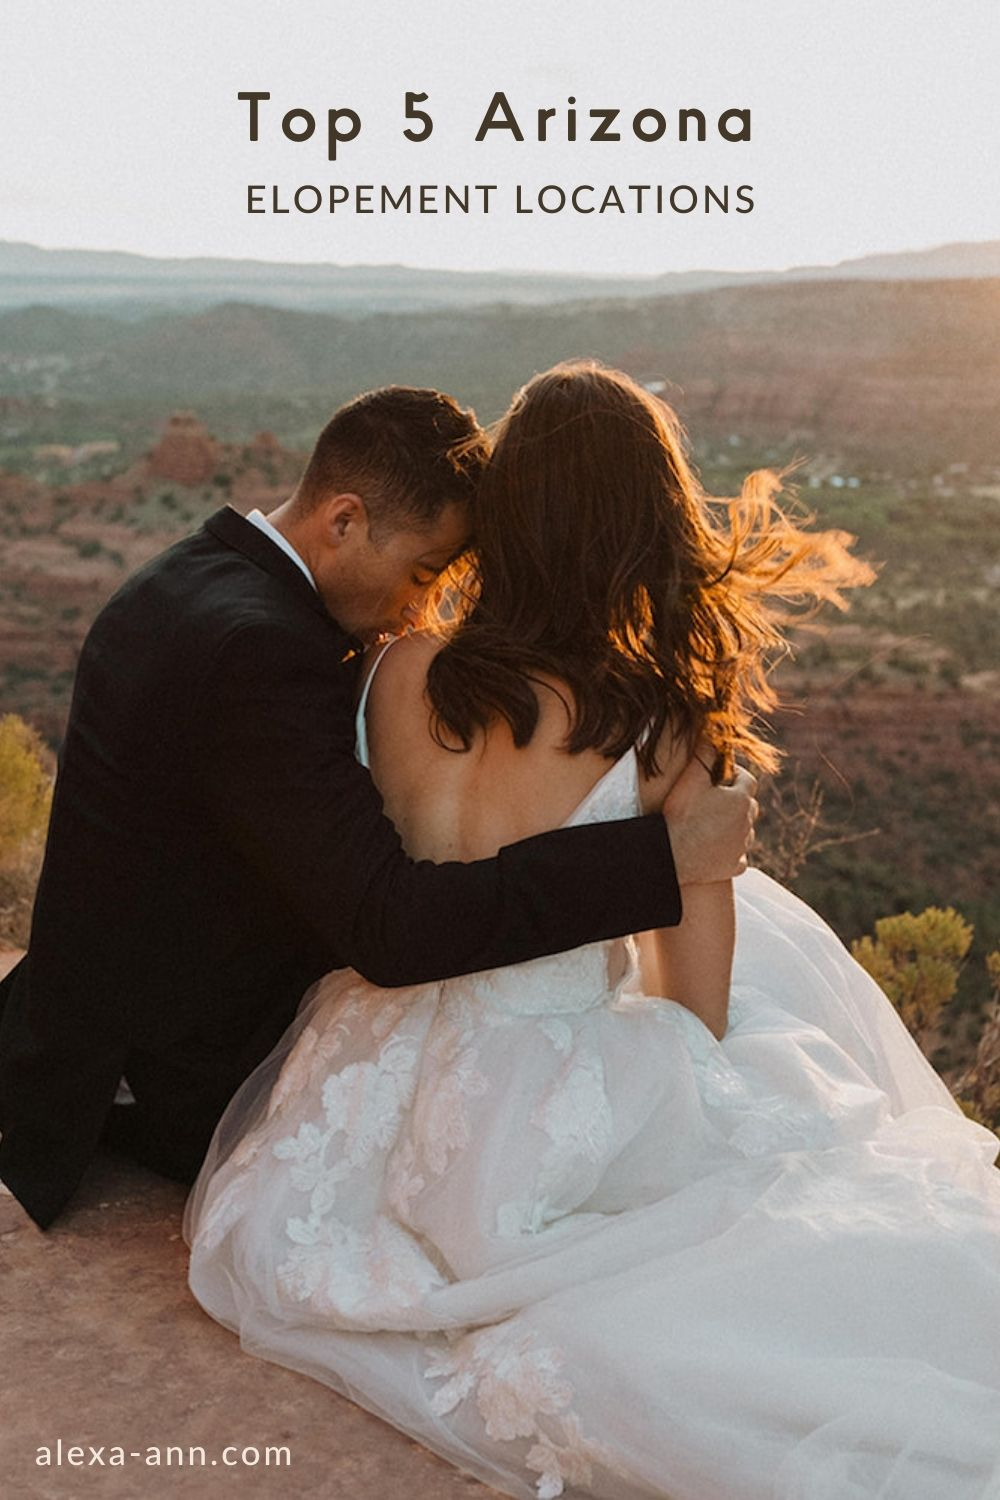 A groom embraces his bride as they sit overlooking the Arizona valley during sunset. Image by Alexa Ann Photography overlaid with text that reads Top 5 Arizona Elopement Locations.